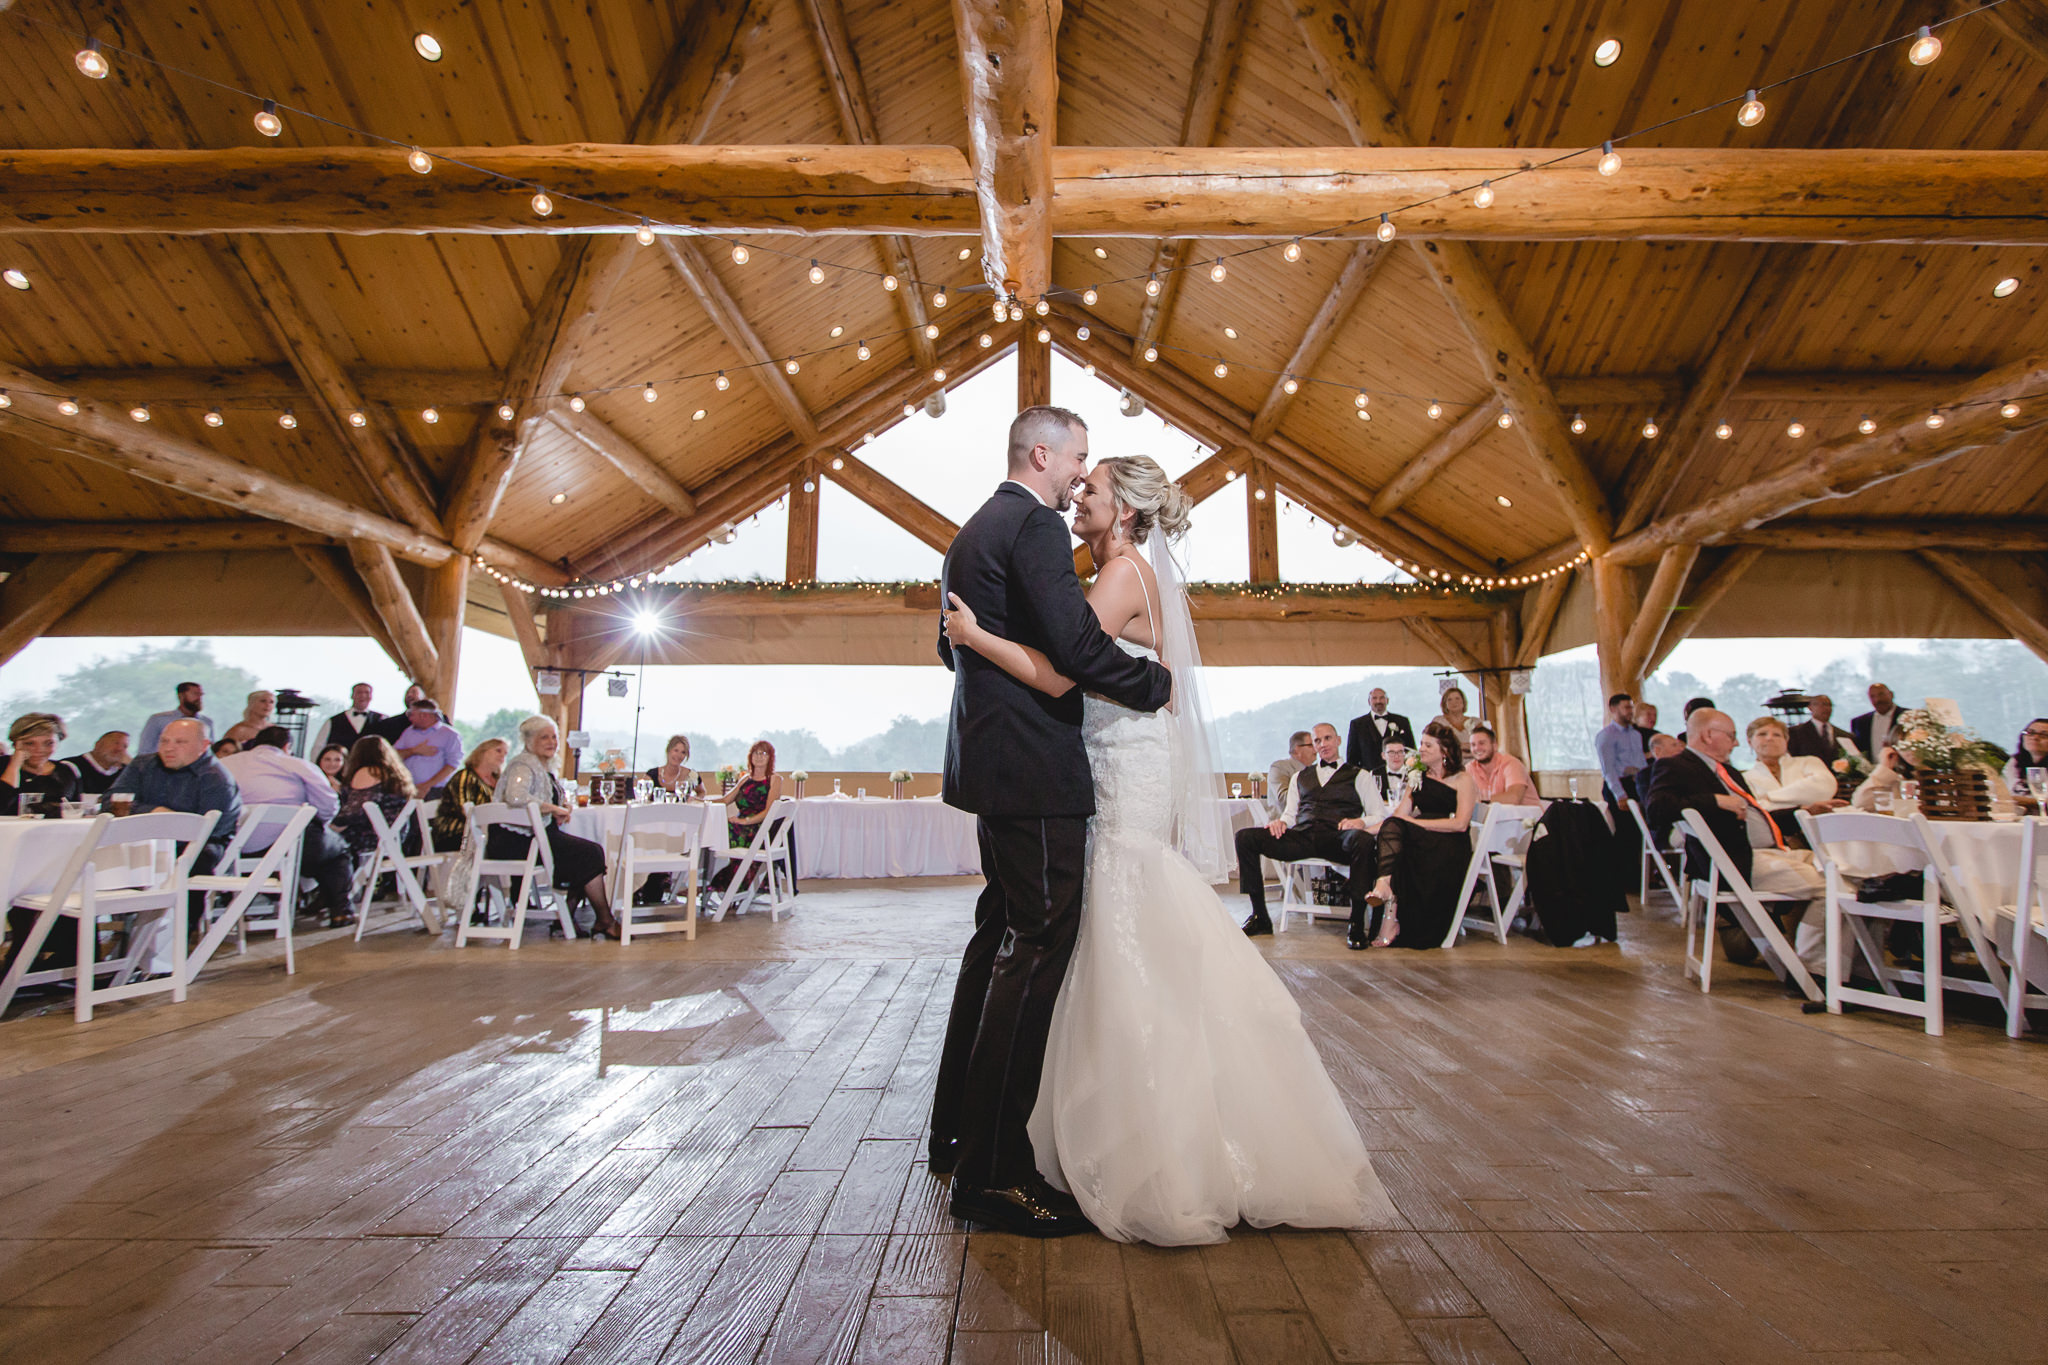 Newlyweds' first dance at the Gathering Place at Darlington Lake